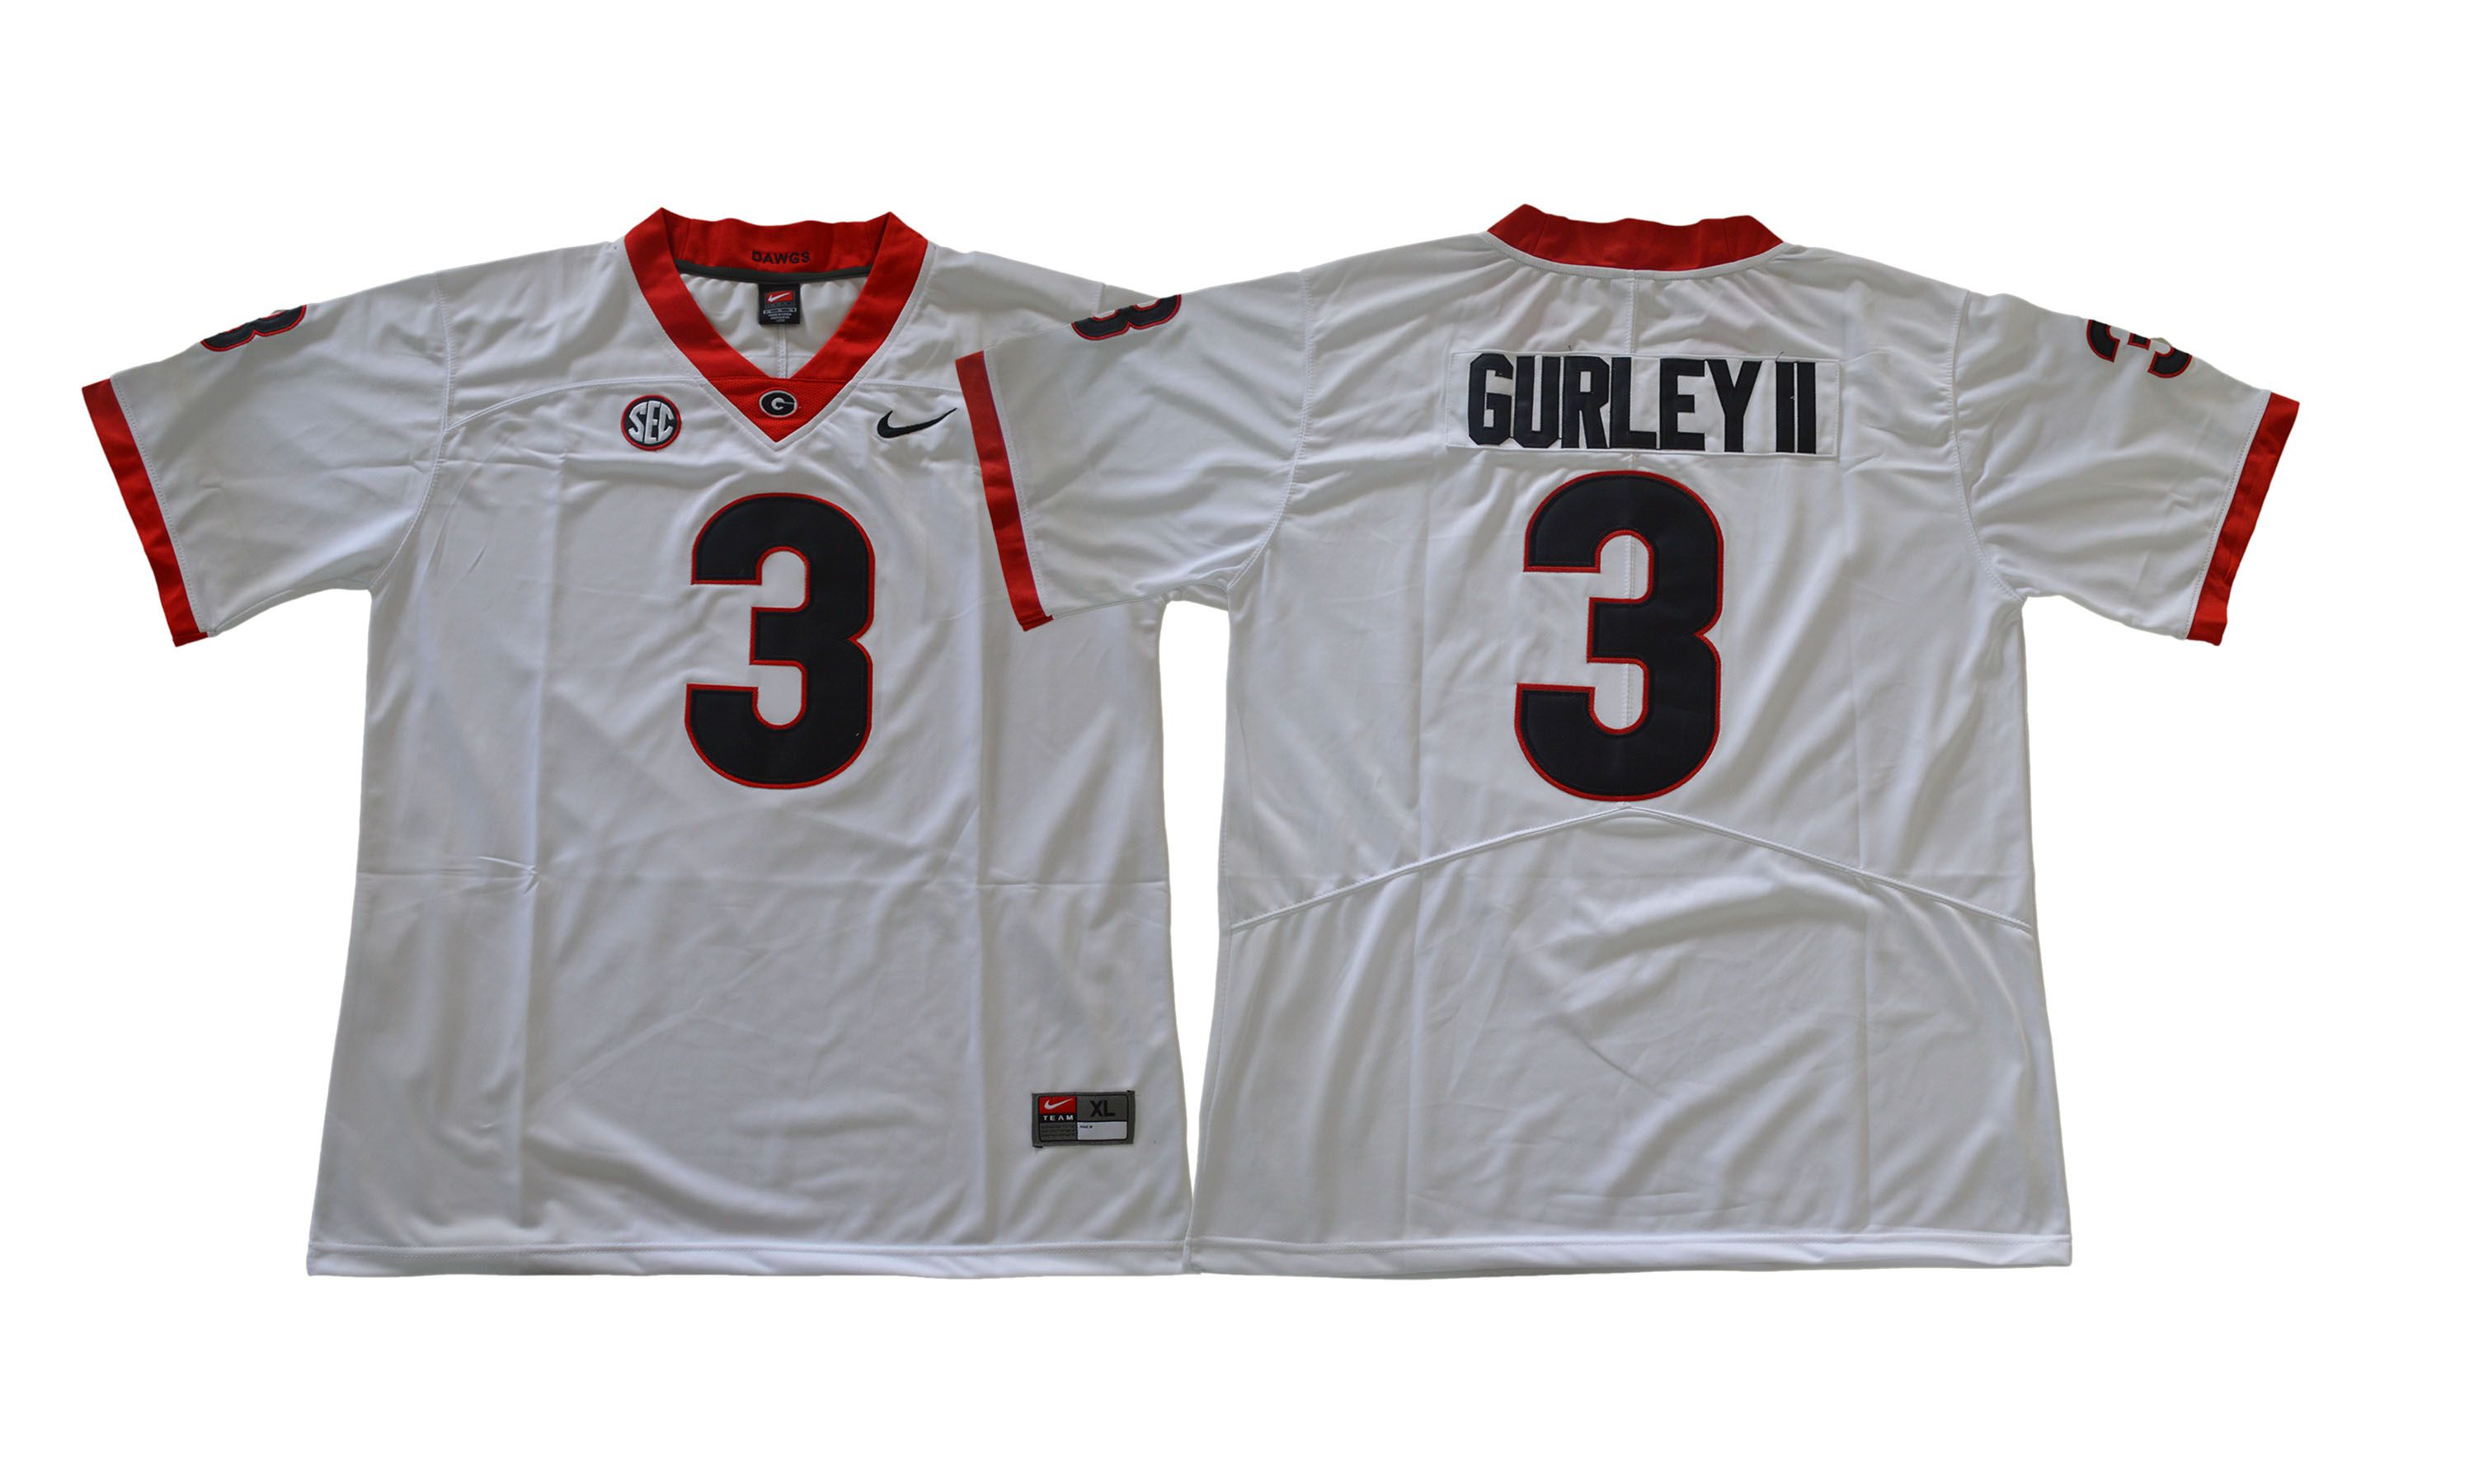 Men NCAA 2017 Georgia Bulldogs 3 Gurleyii white jersey